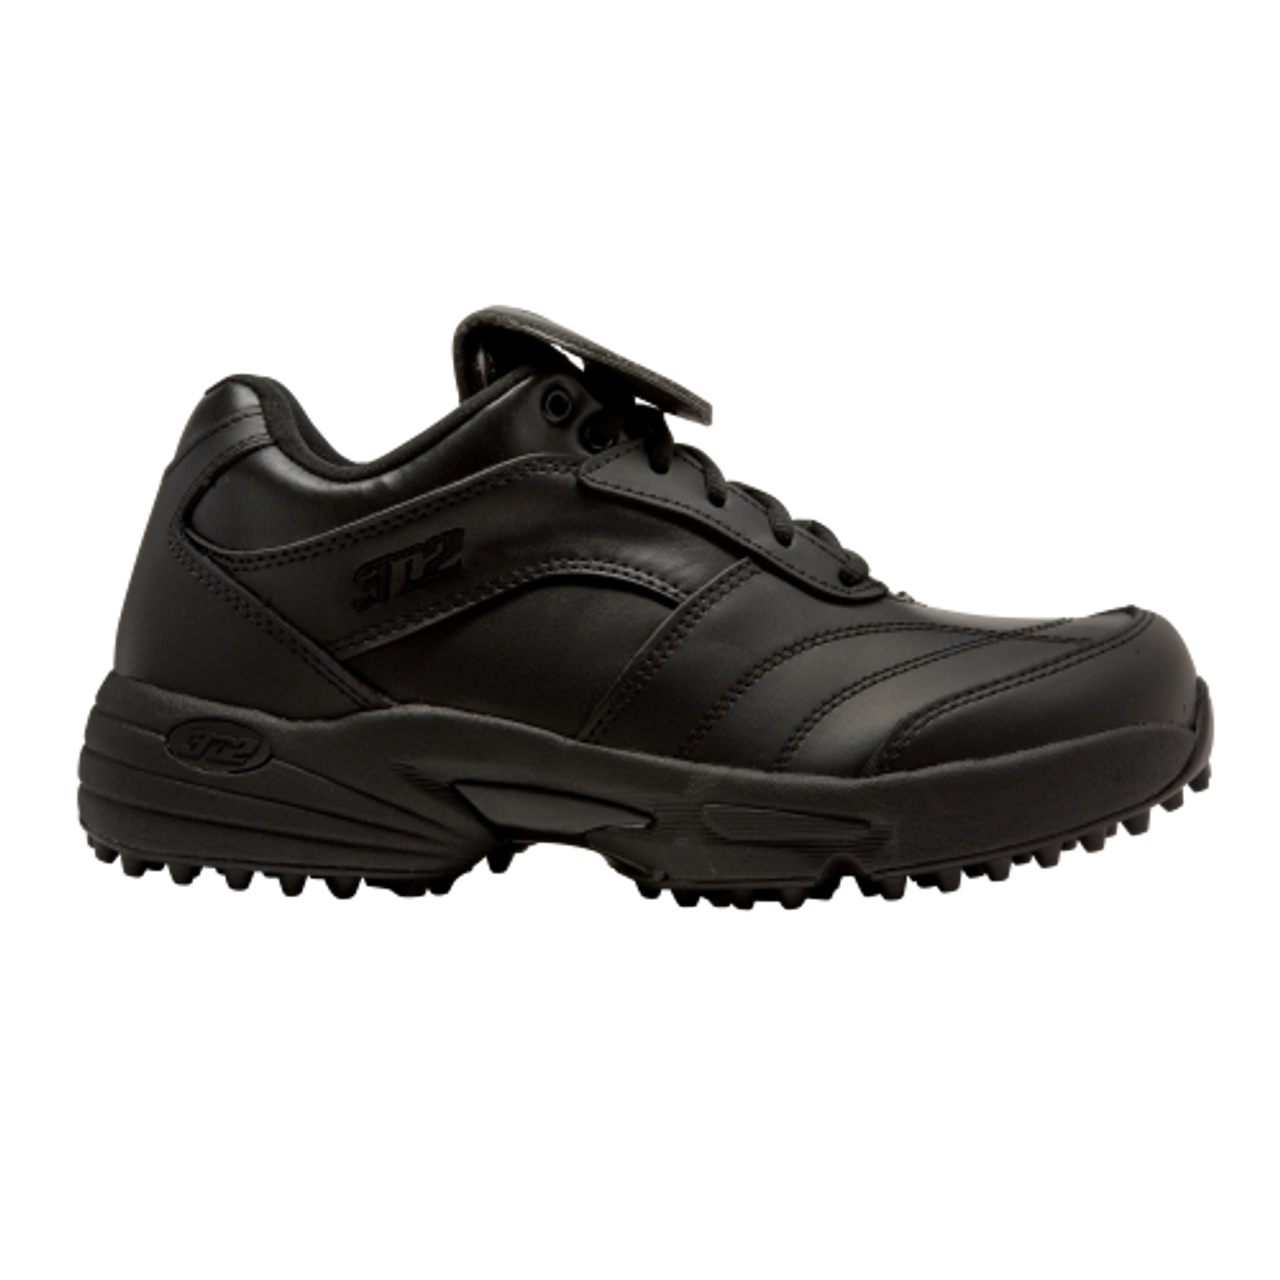 cff235bc584 3N2 Reaction Umpire Referee Field Shoe